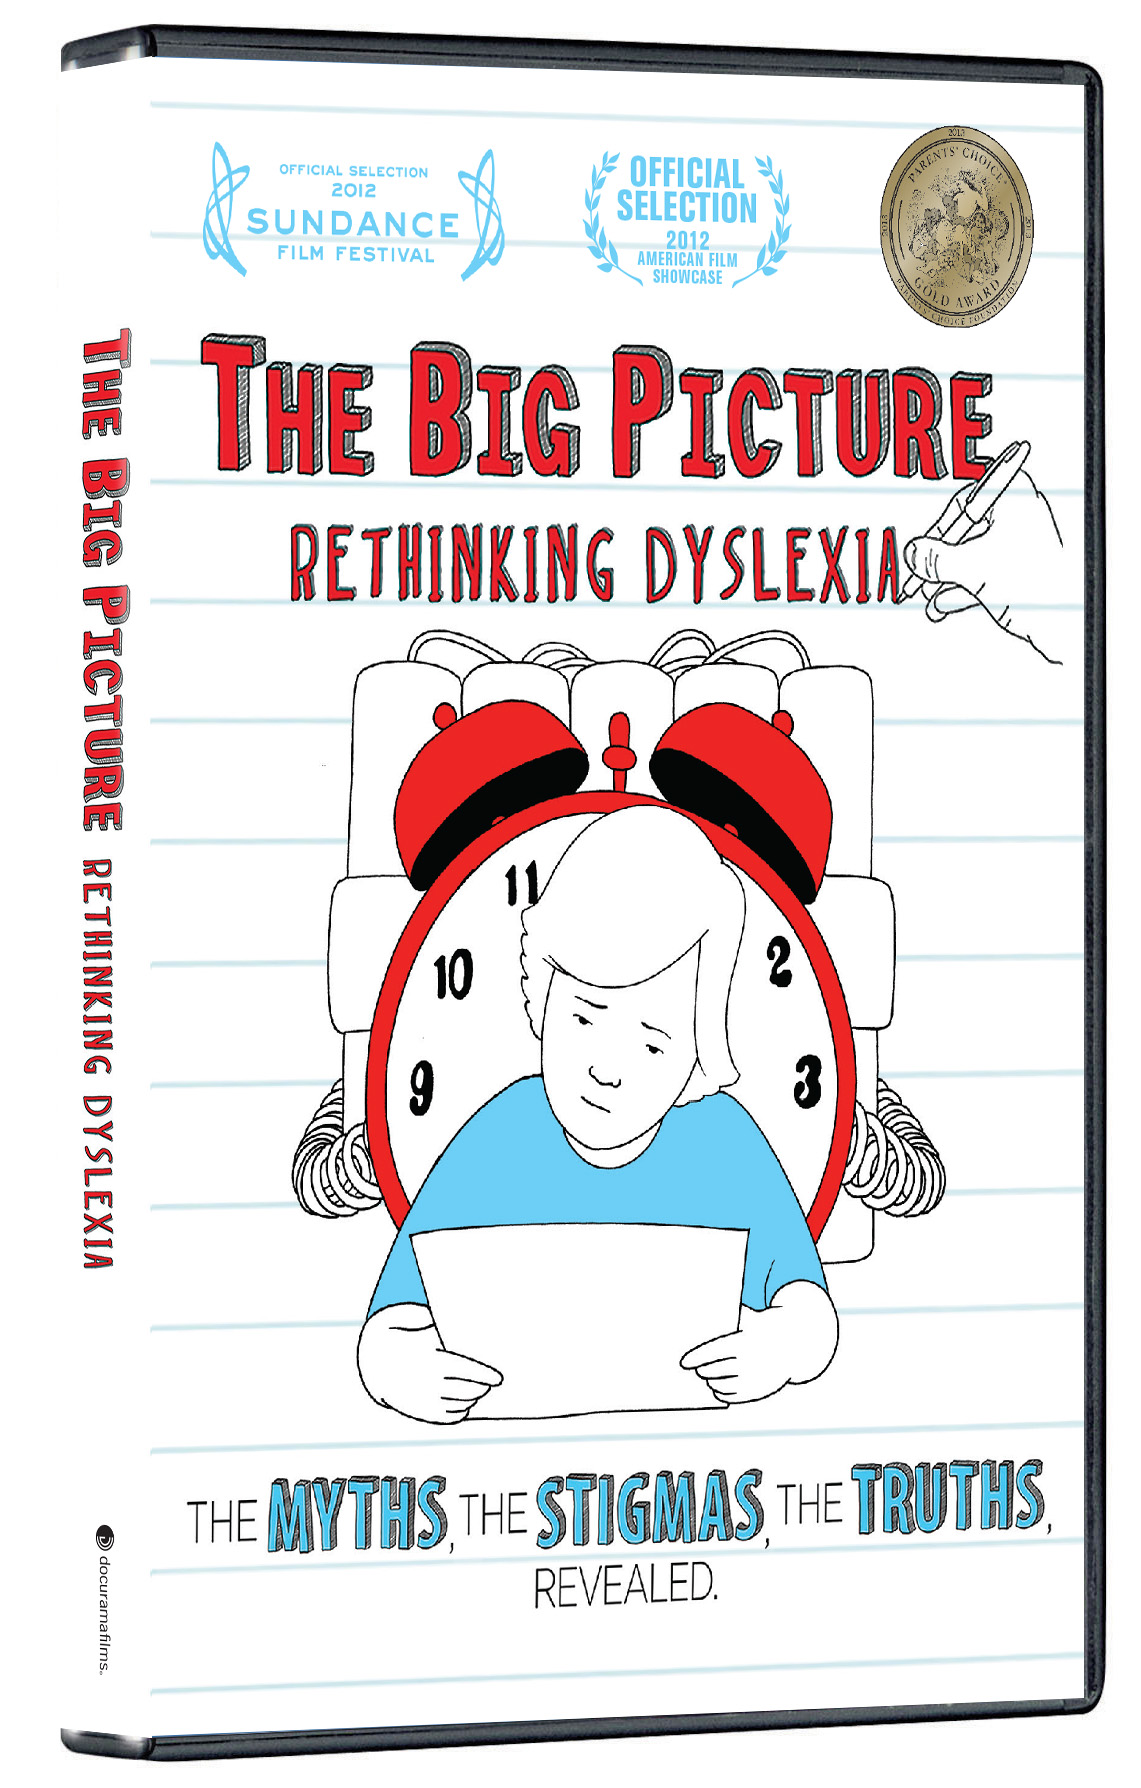 The Big Picture Rethinking Dyslexia DVD Review